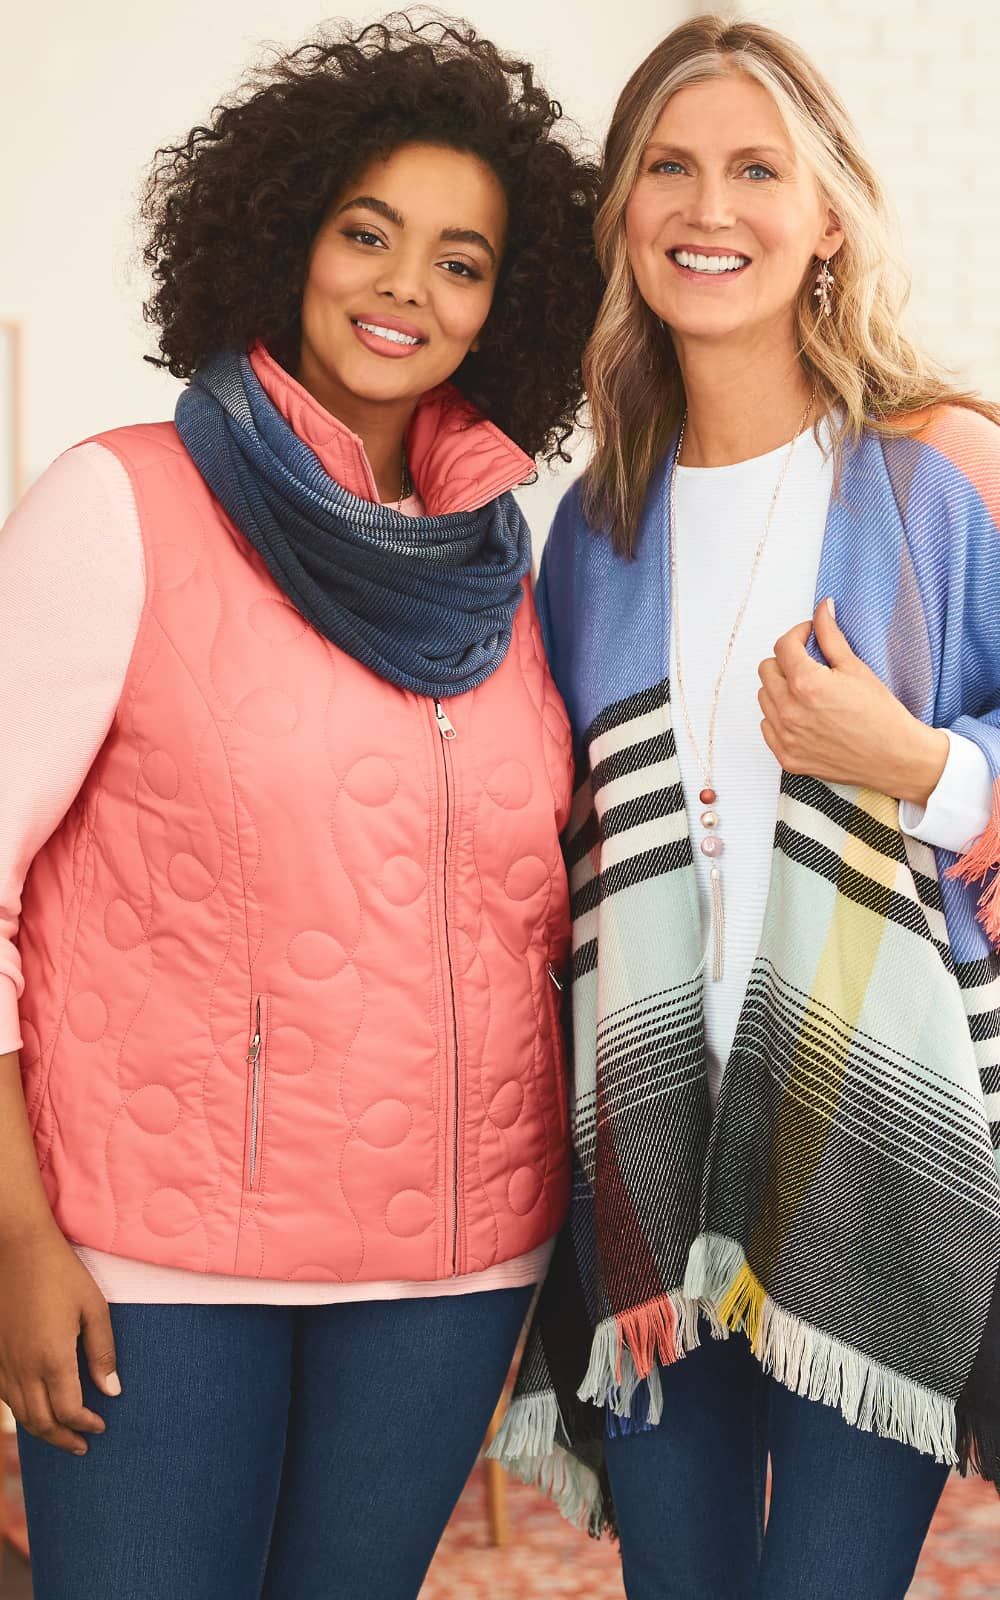 The Lovely Layers Outfit, on the left, featuring a three-quarters-sleeve essential top, solid swirl quilted vest, space dye knit loop scarf, and an everyday straight jean. The All Wrapped Up Outfit, on the right, featuring a three-quarters-sleeve essential top, striped fringe ruana, and jean legging.